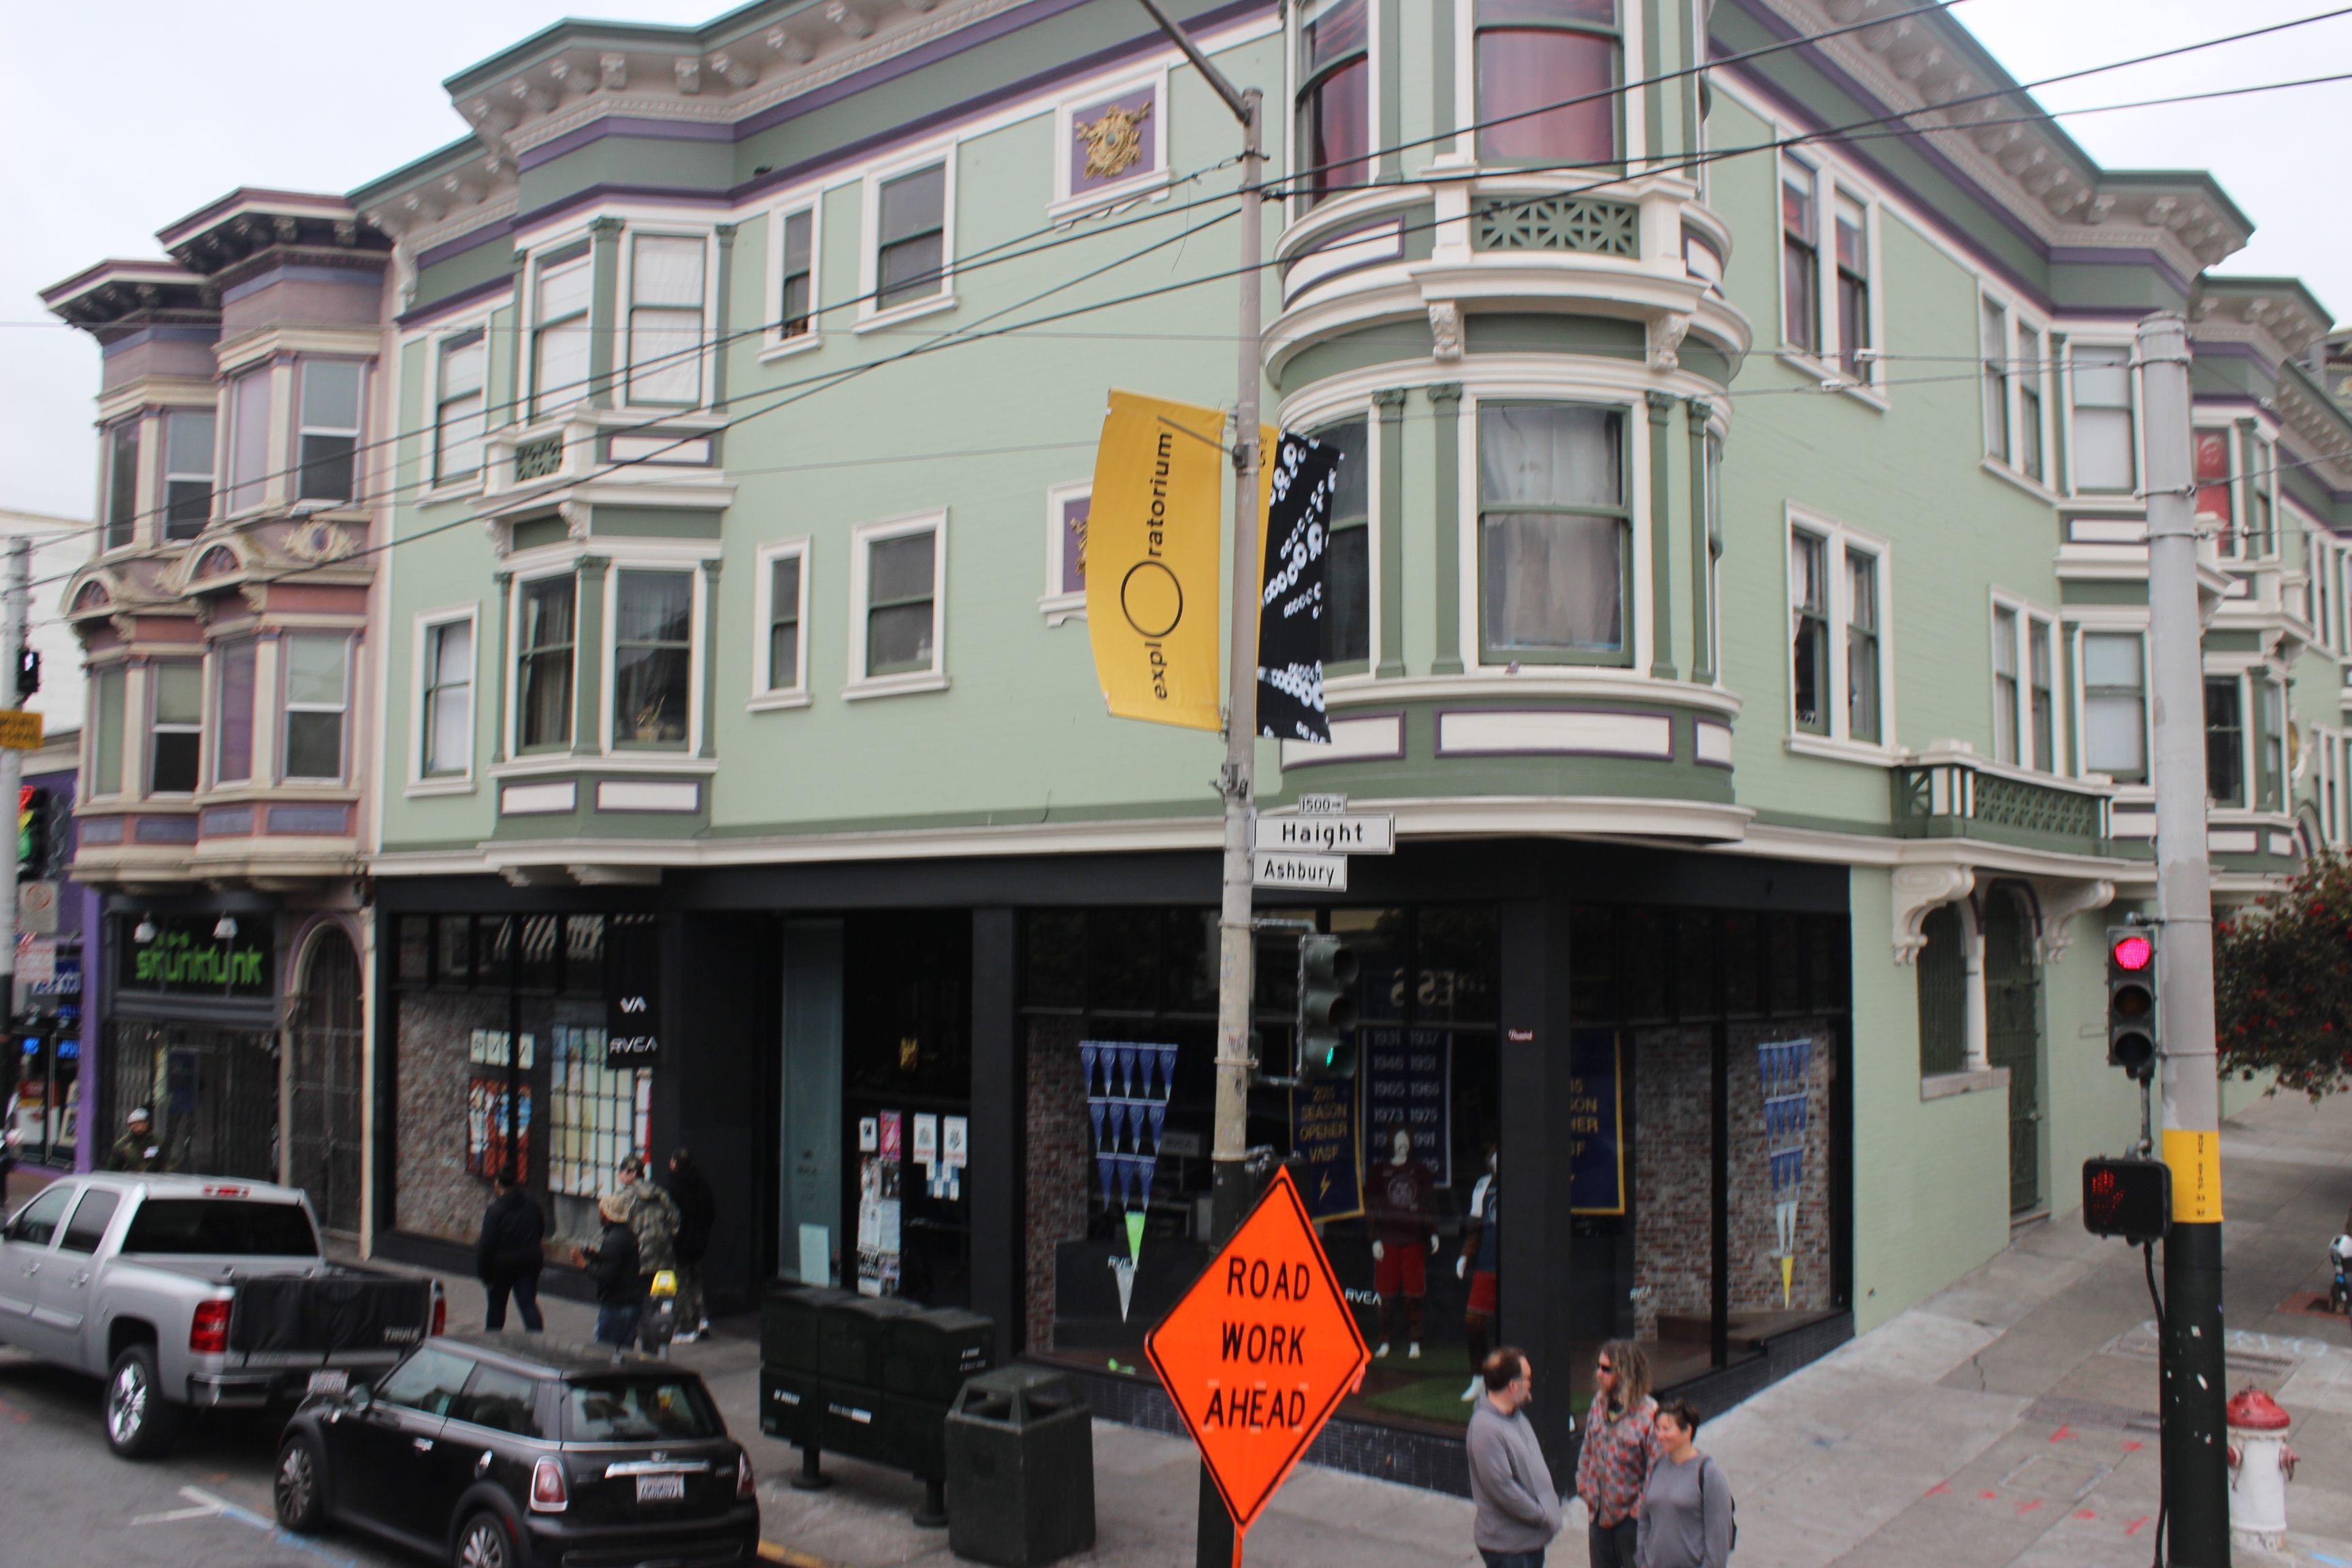 Haight Ashbury, spiritual homeland of hippies in San Francisco